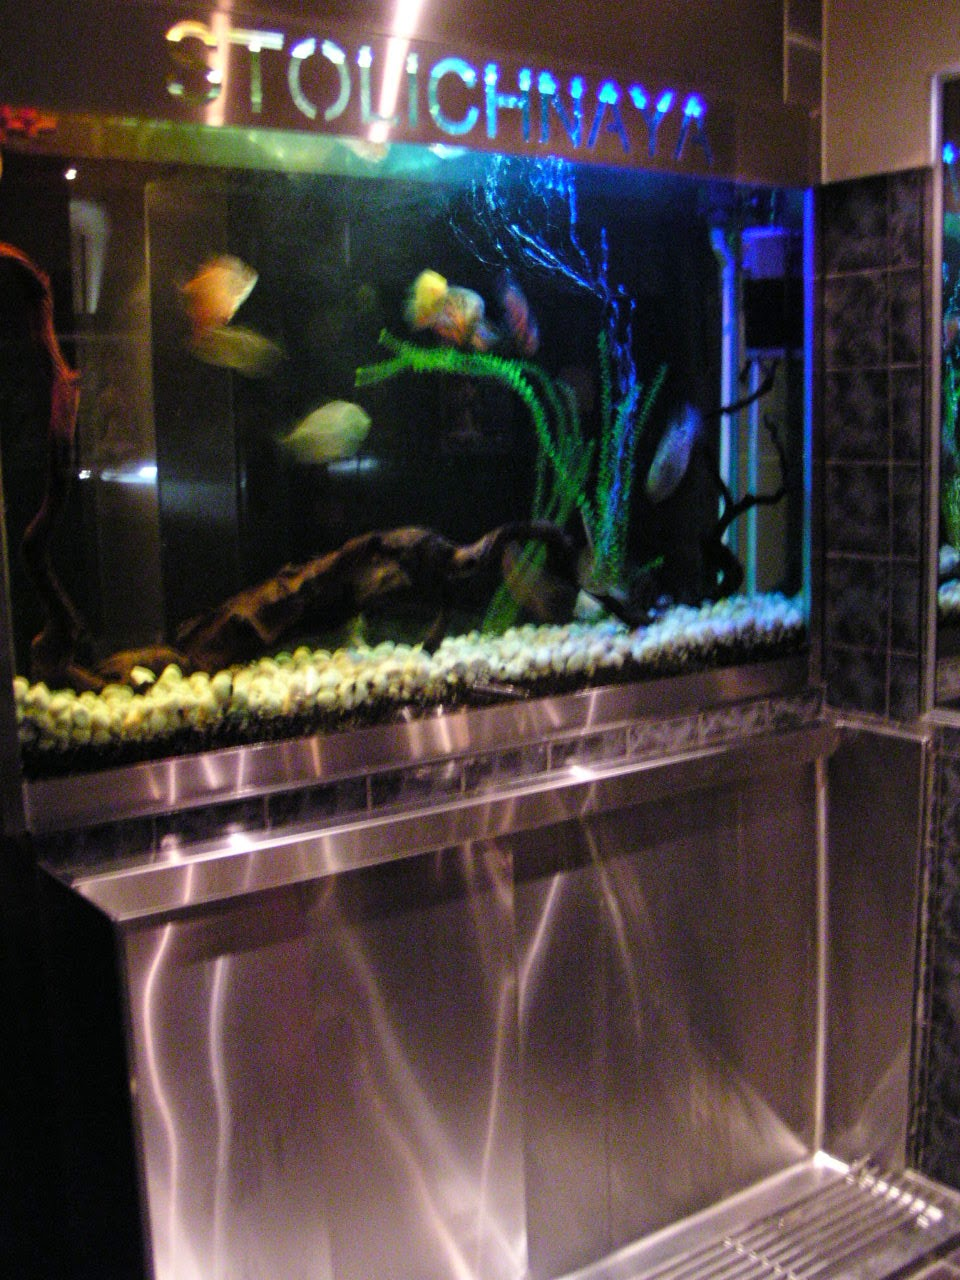 Large tropical aquarium